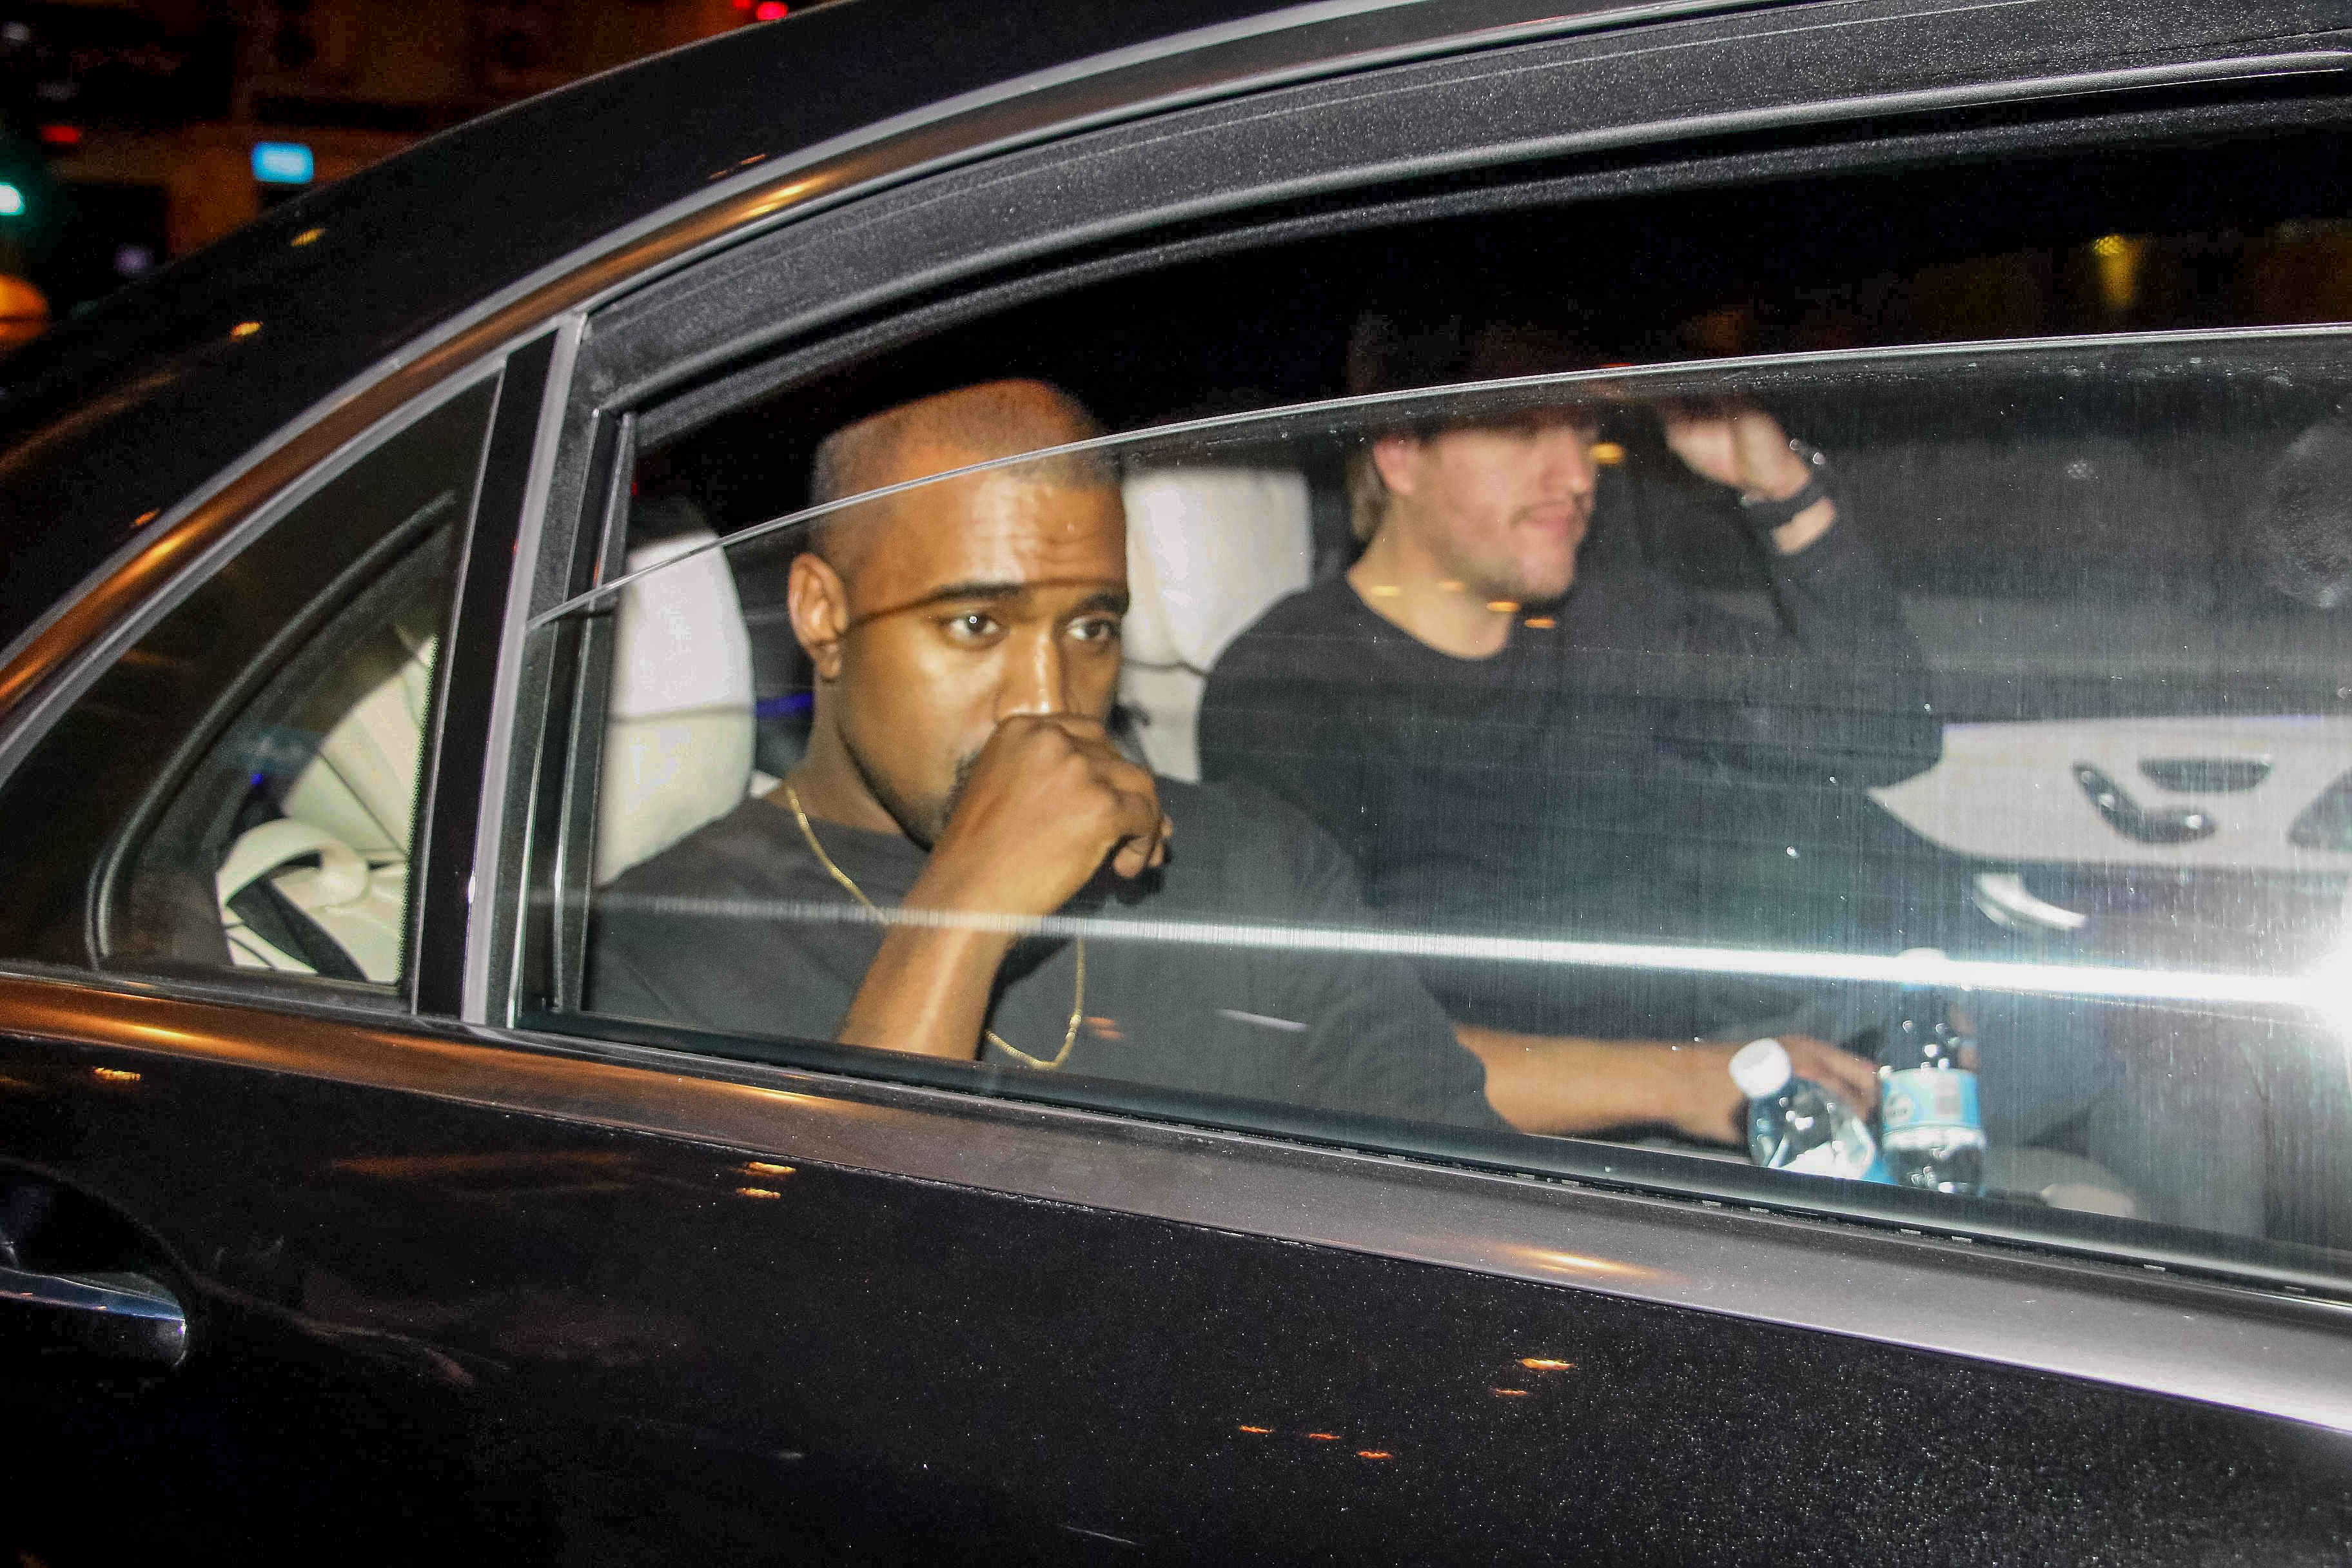 Kanye West And EMI Settle Lawsuit, Agree To Pay Their Own Legal Bills